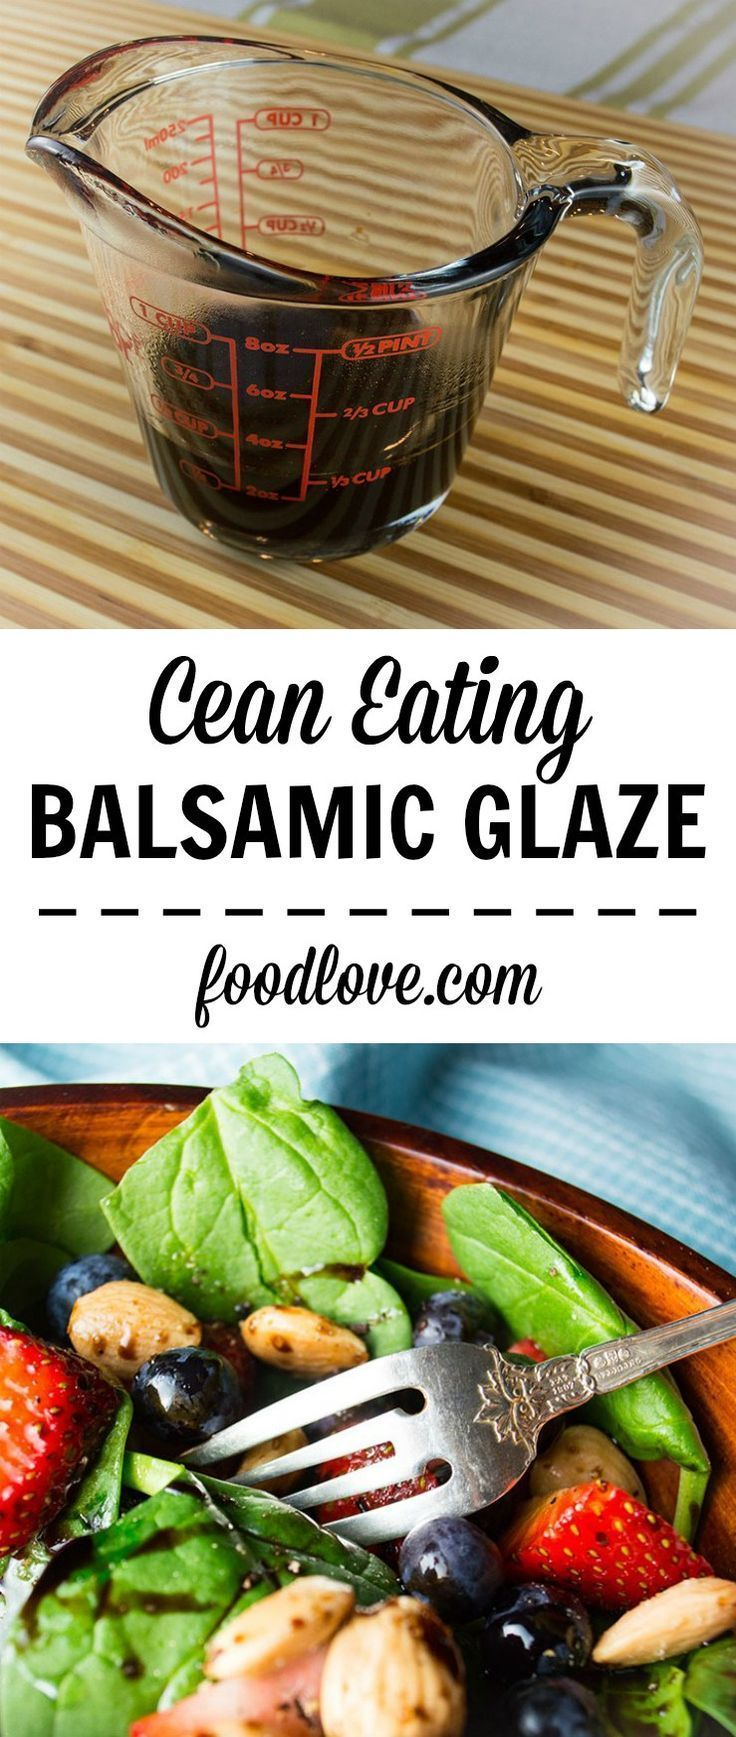 Balsamic Glaze Recipe With Honey Recipe Balsamic Glaze Recipes Balsamic Glaze Honey Recipes